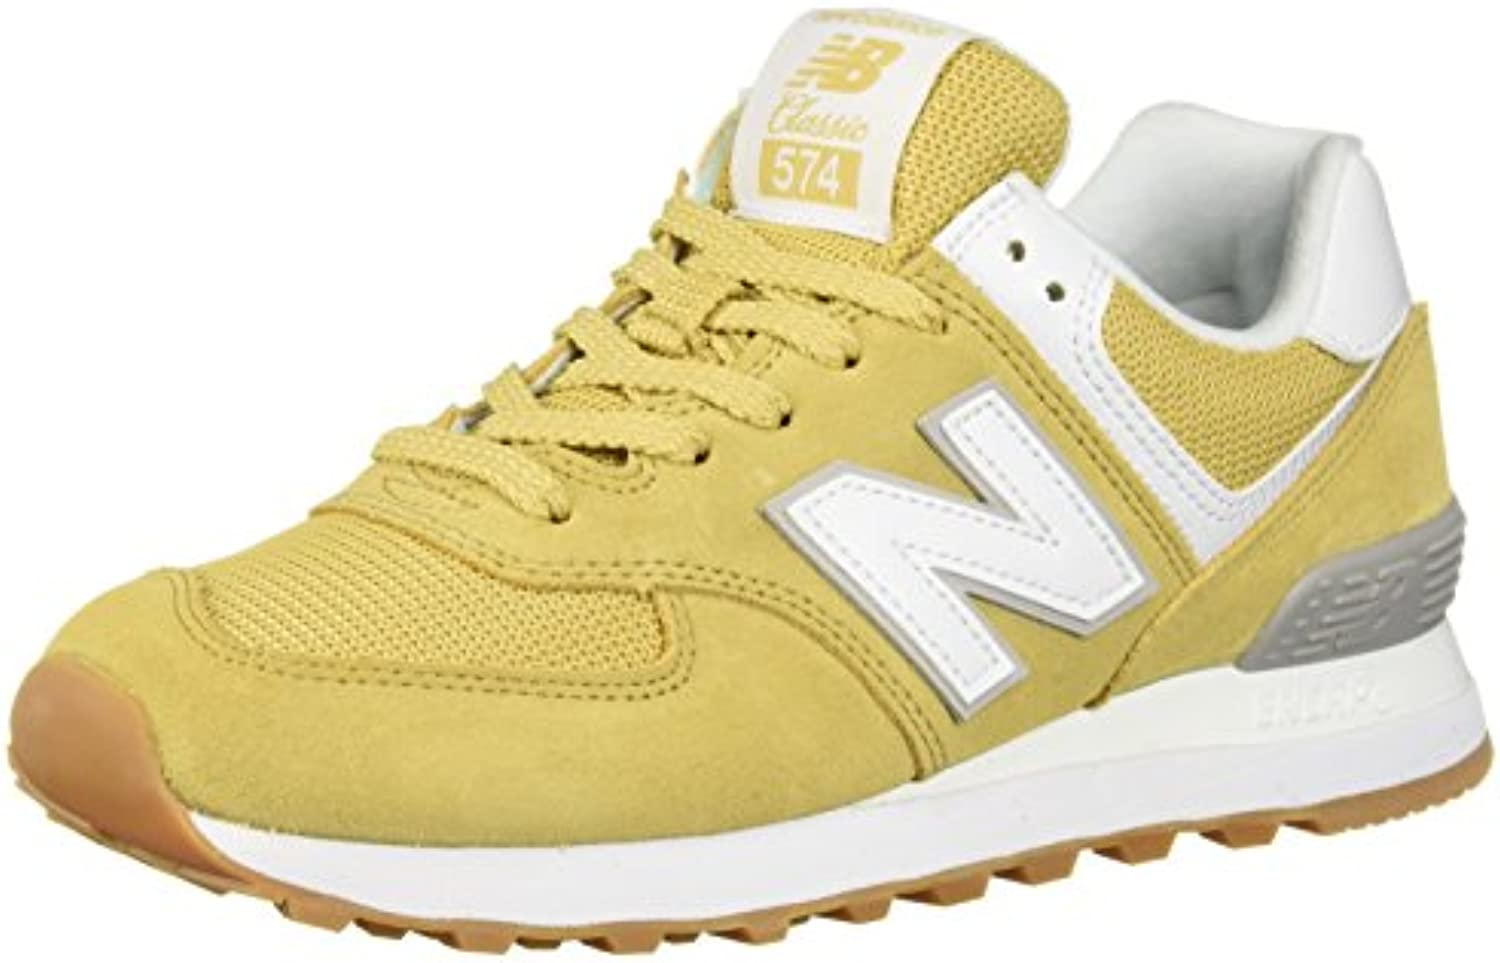 New Balance574v2-574v2 Donna, Donna, Donna, Bianco (Moonbeam Overcast), 44 EU | Outlet